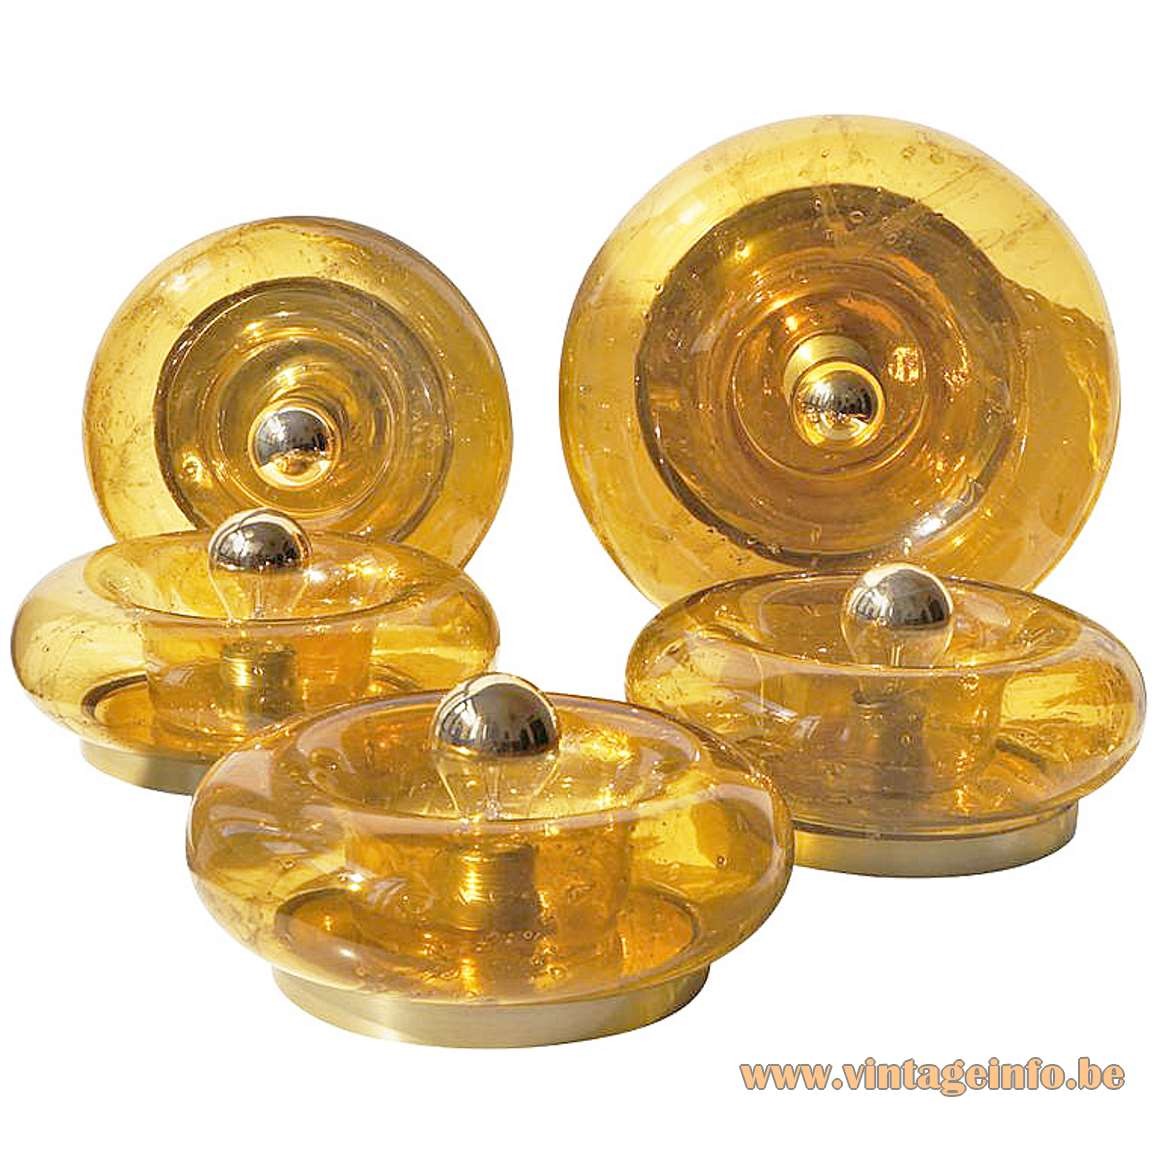 Doria amber glass flush mounts or wall lamps round donut style lights 1960s 1970s MCM Germany E27 light socket